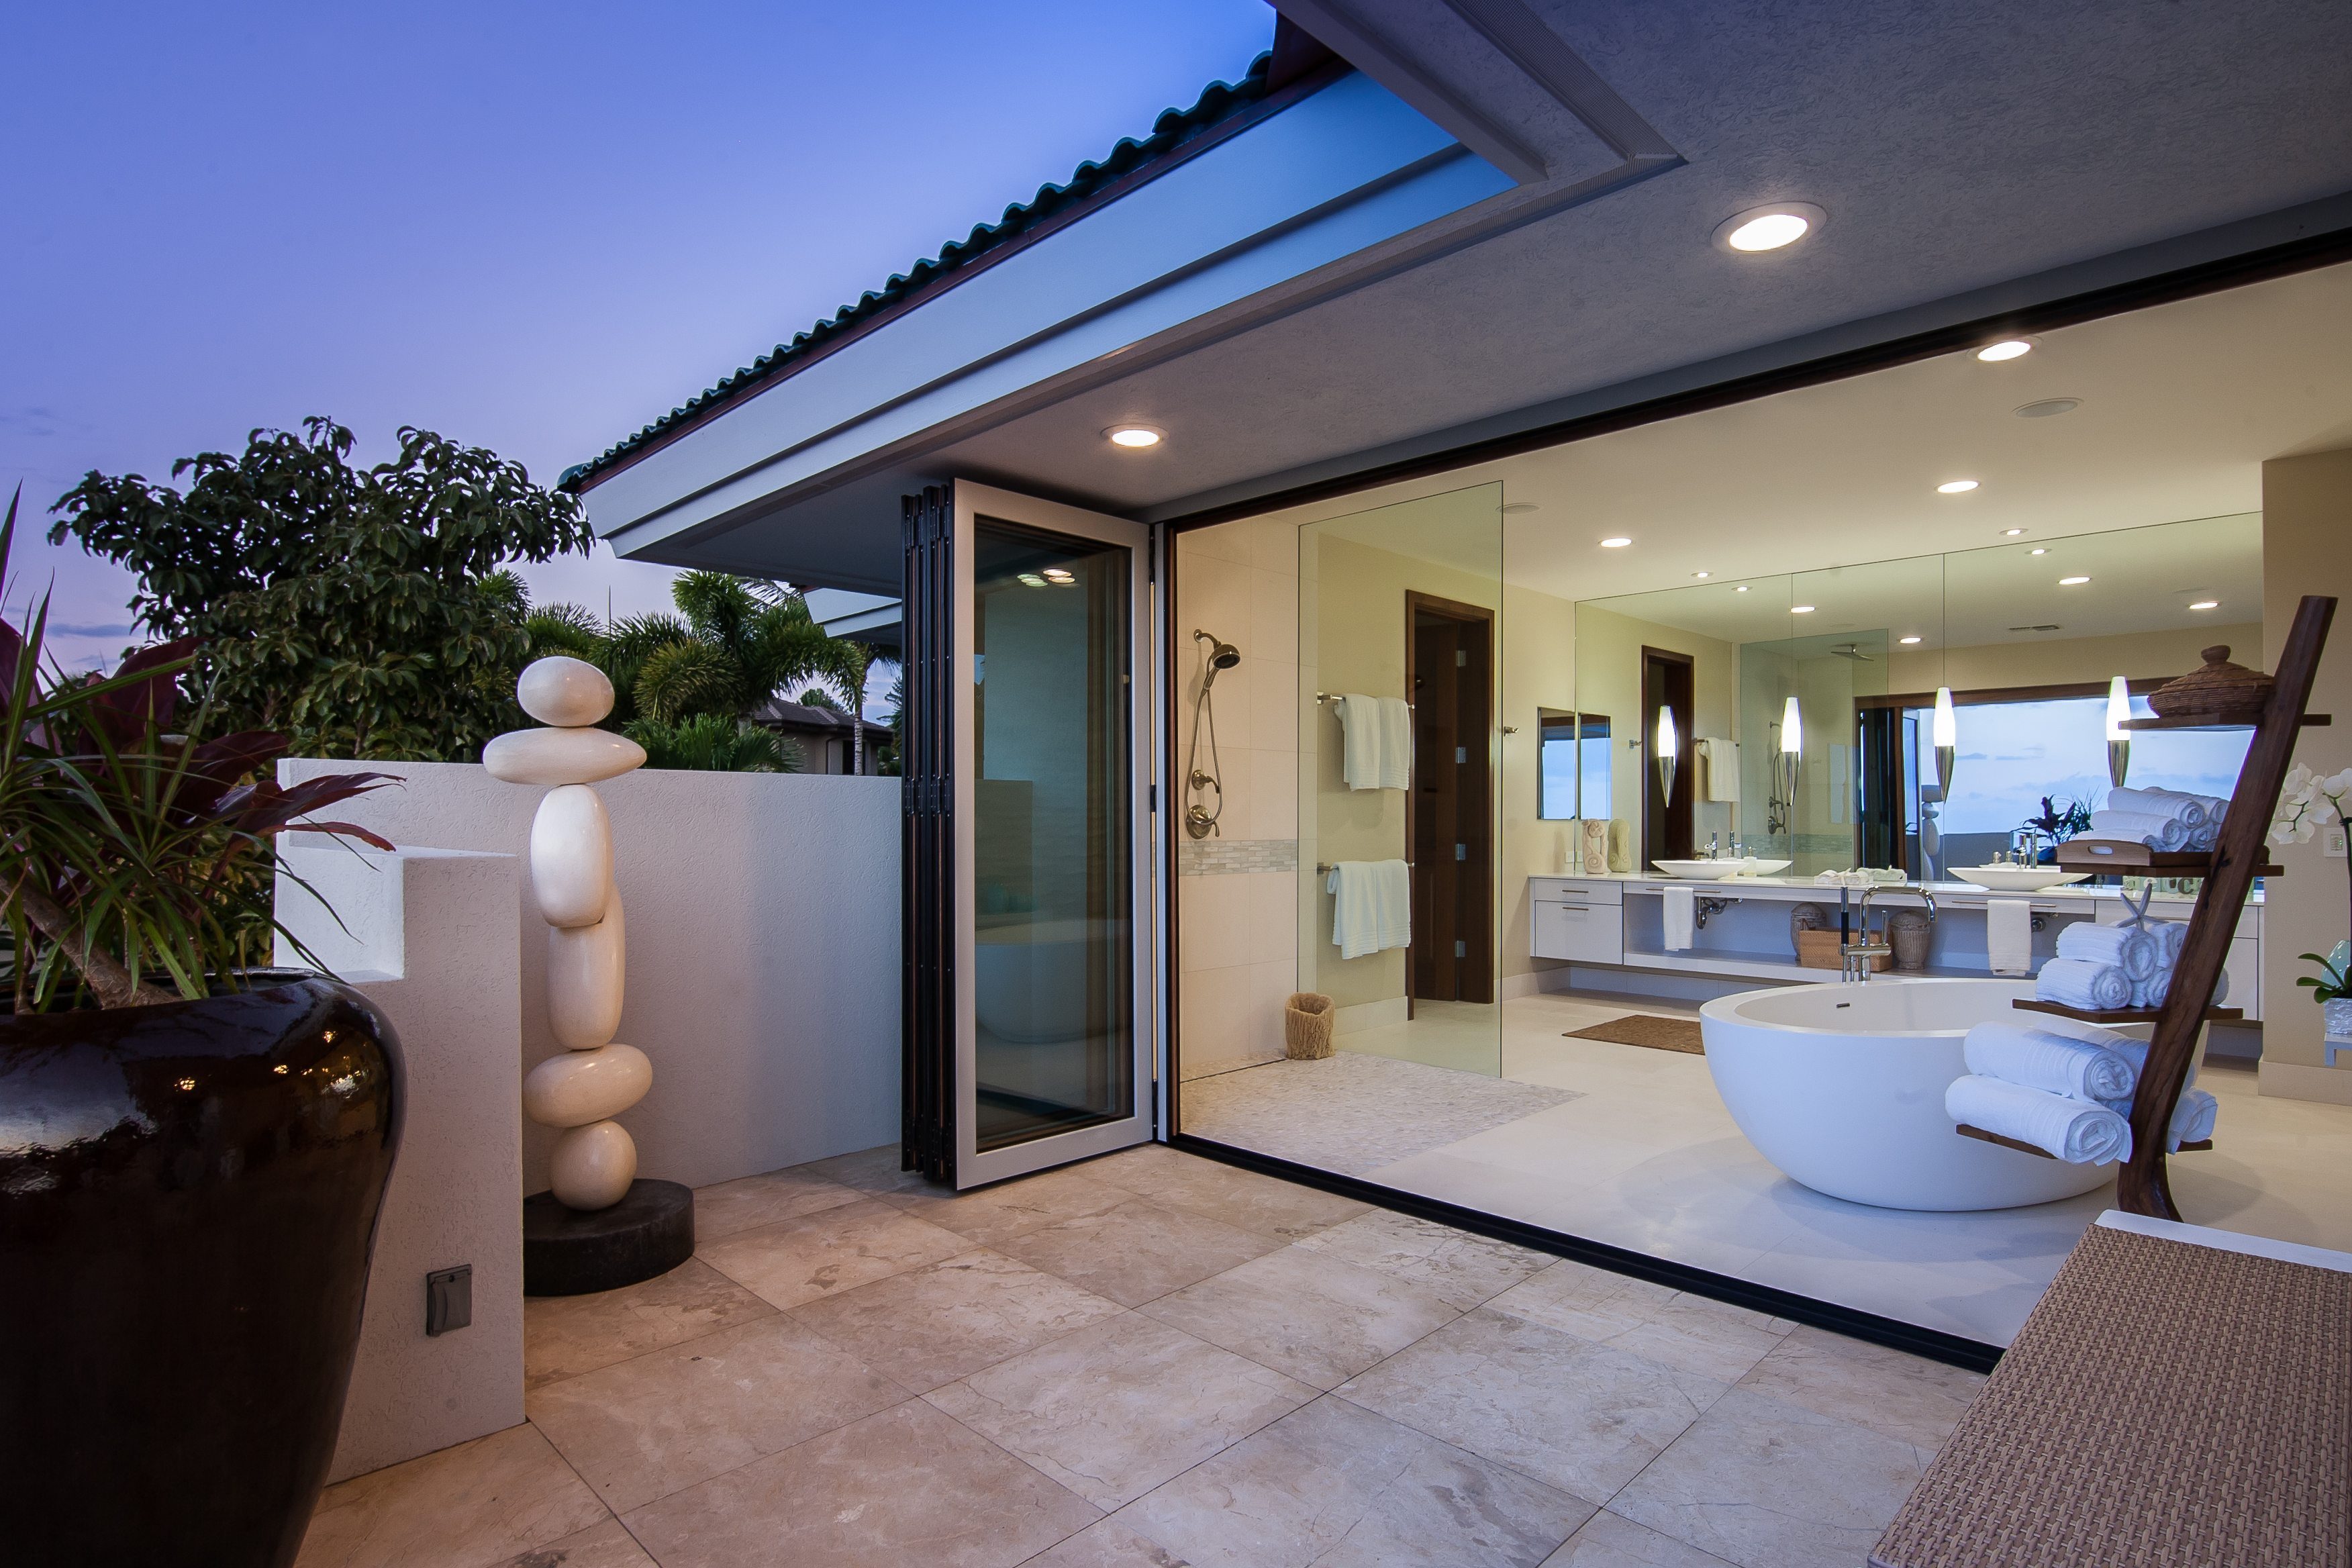 Home Renovation Trends – Extensions